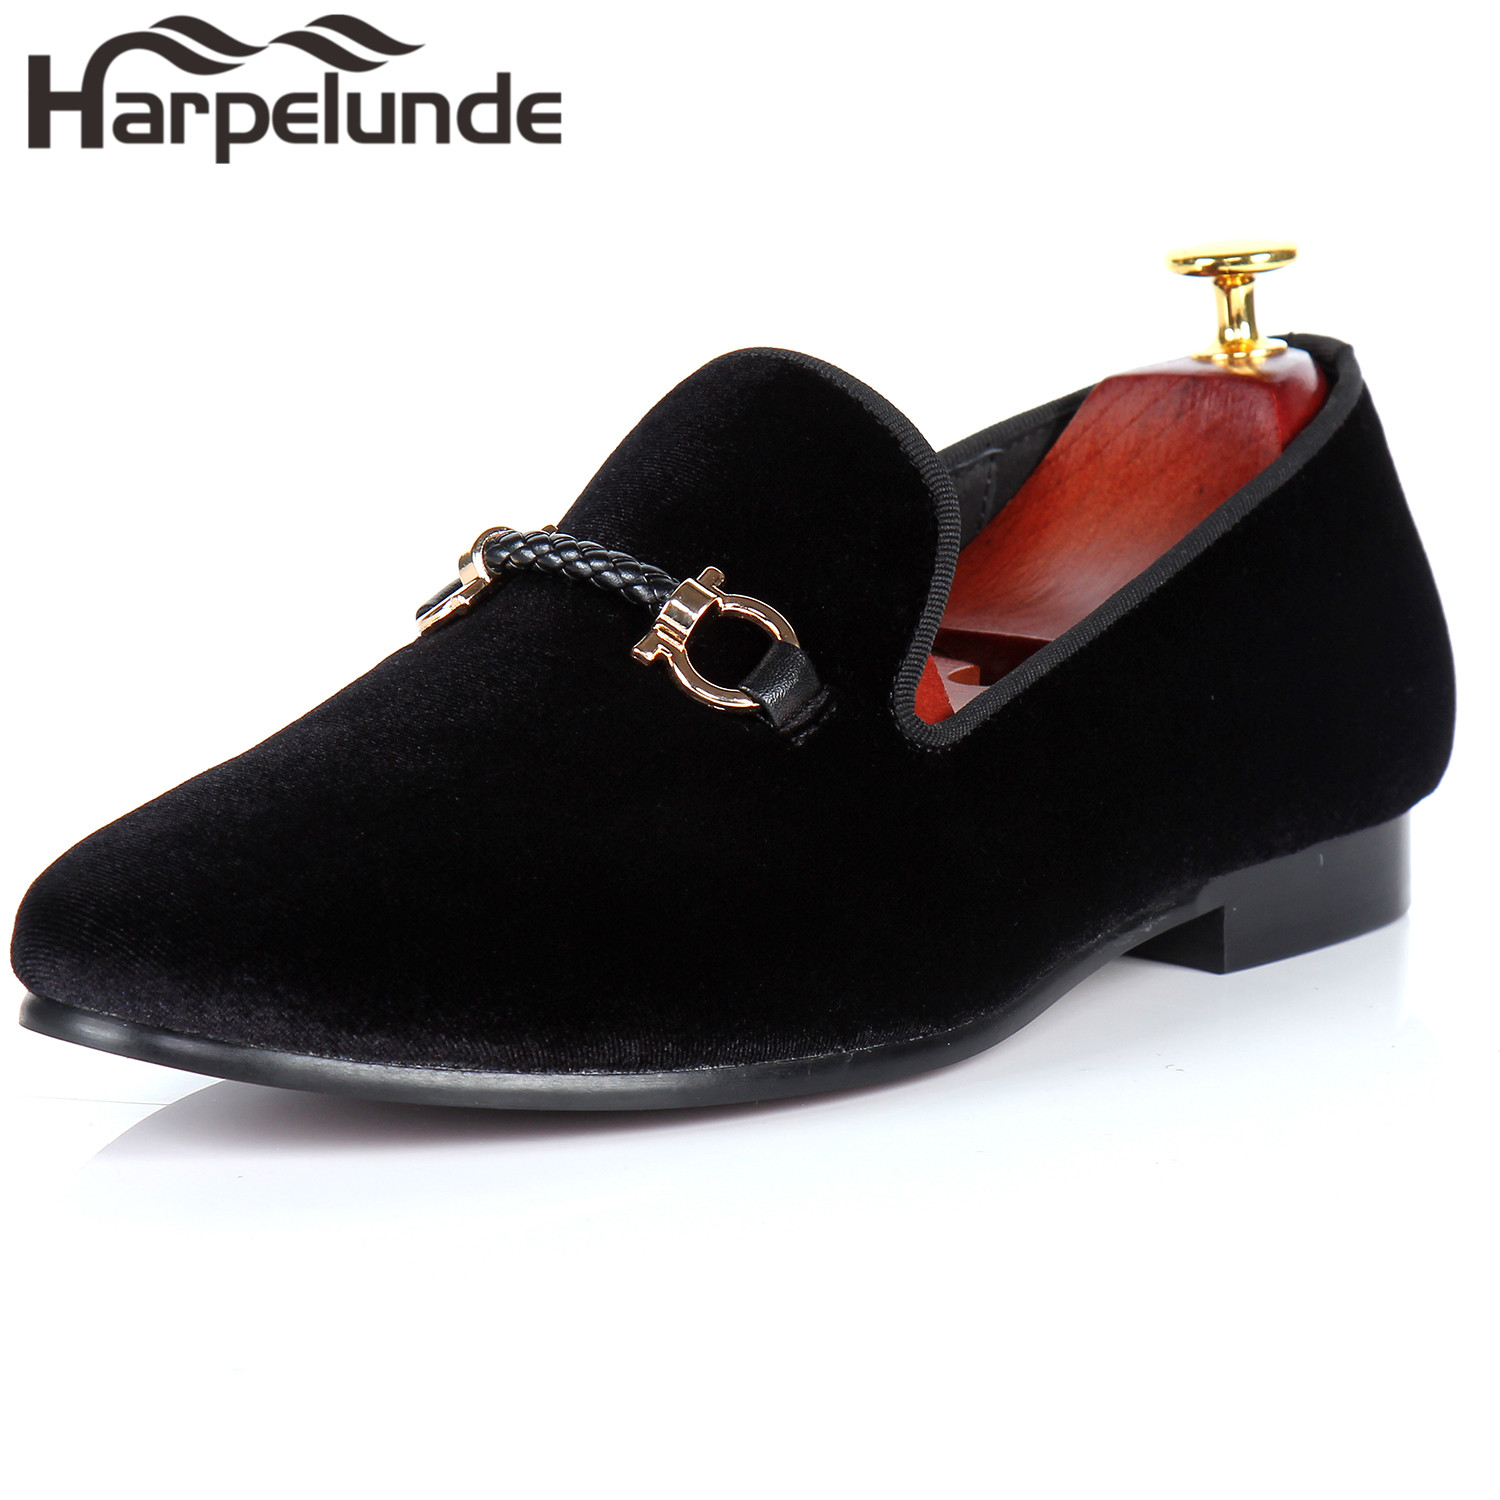 Harpelunde Buckle Men Kleit kingad Must Velvet Loafers Fashion Jalatsid Suurus 6-14